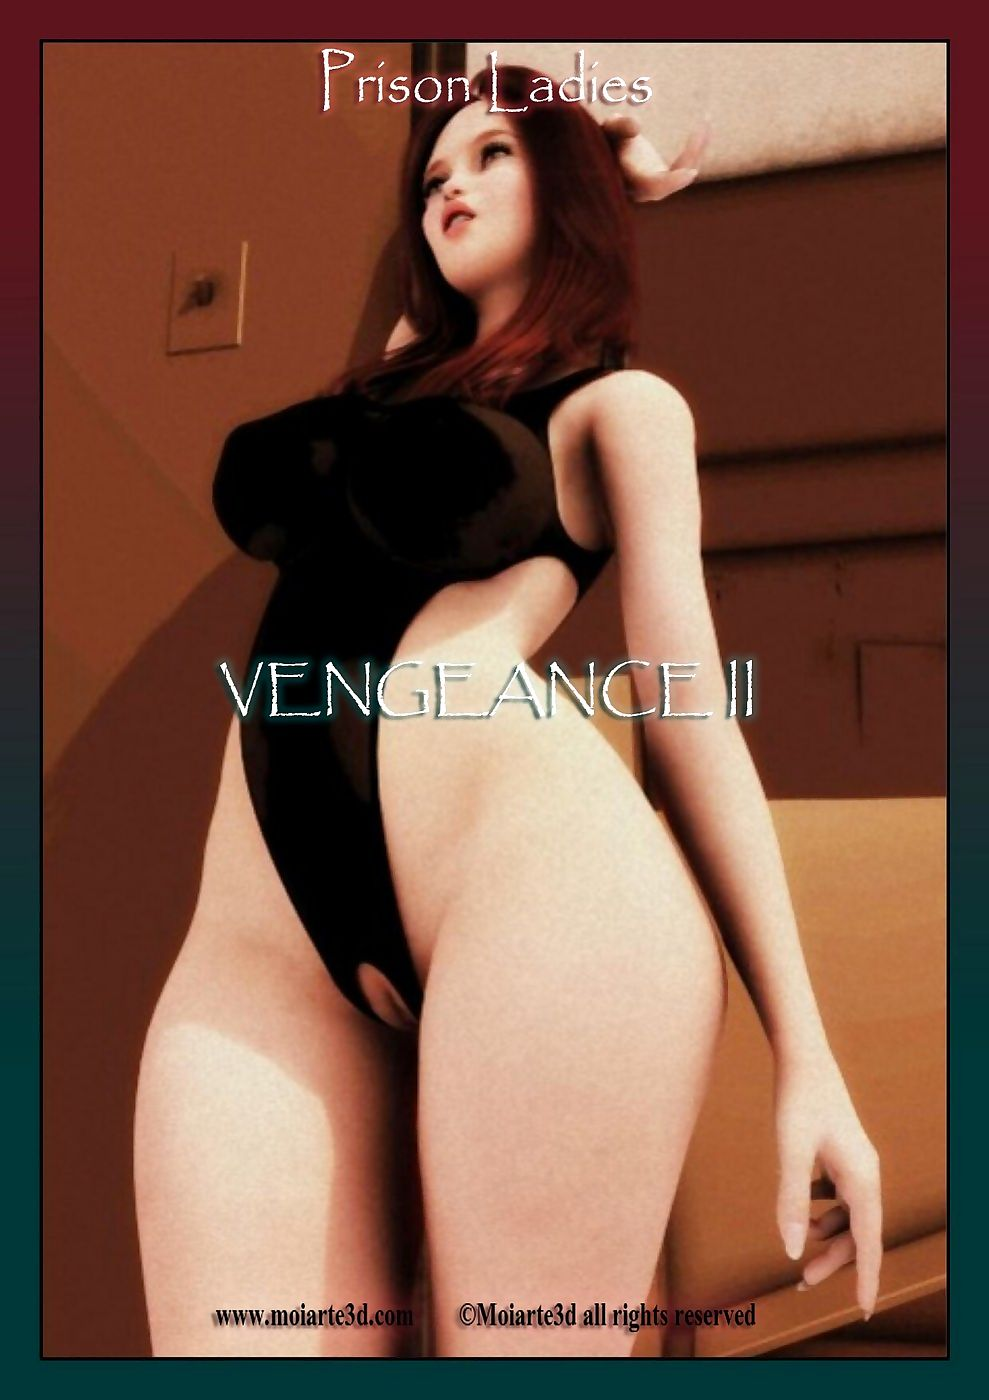 Moiarte- Prison Ladies Vengeance Vol 2